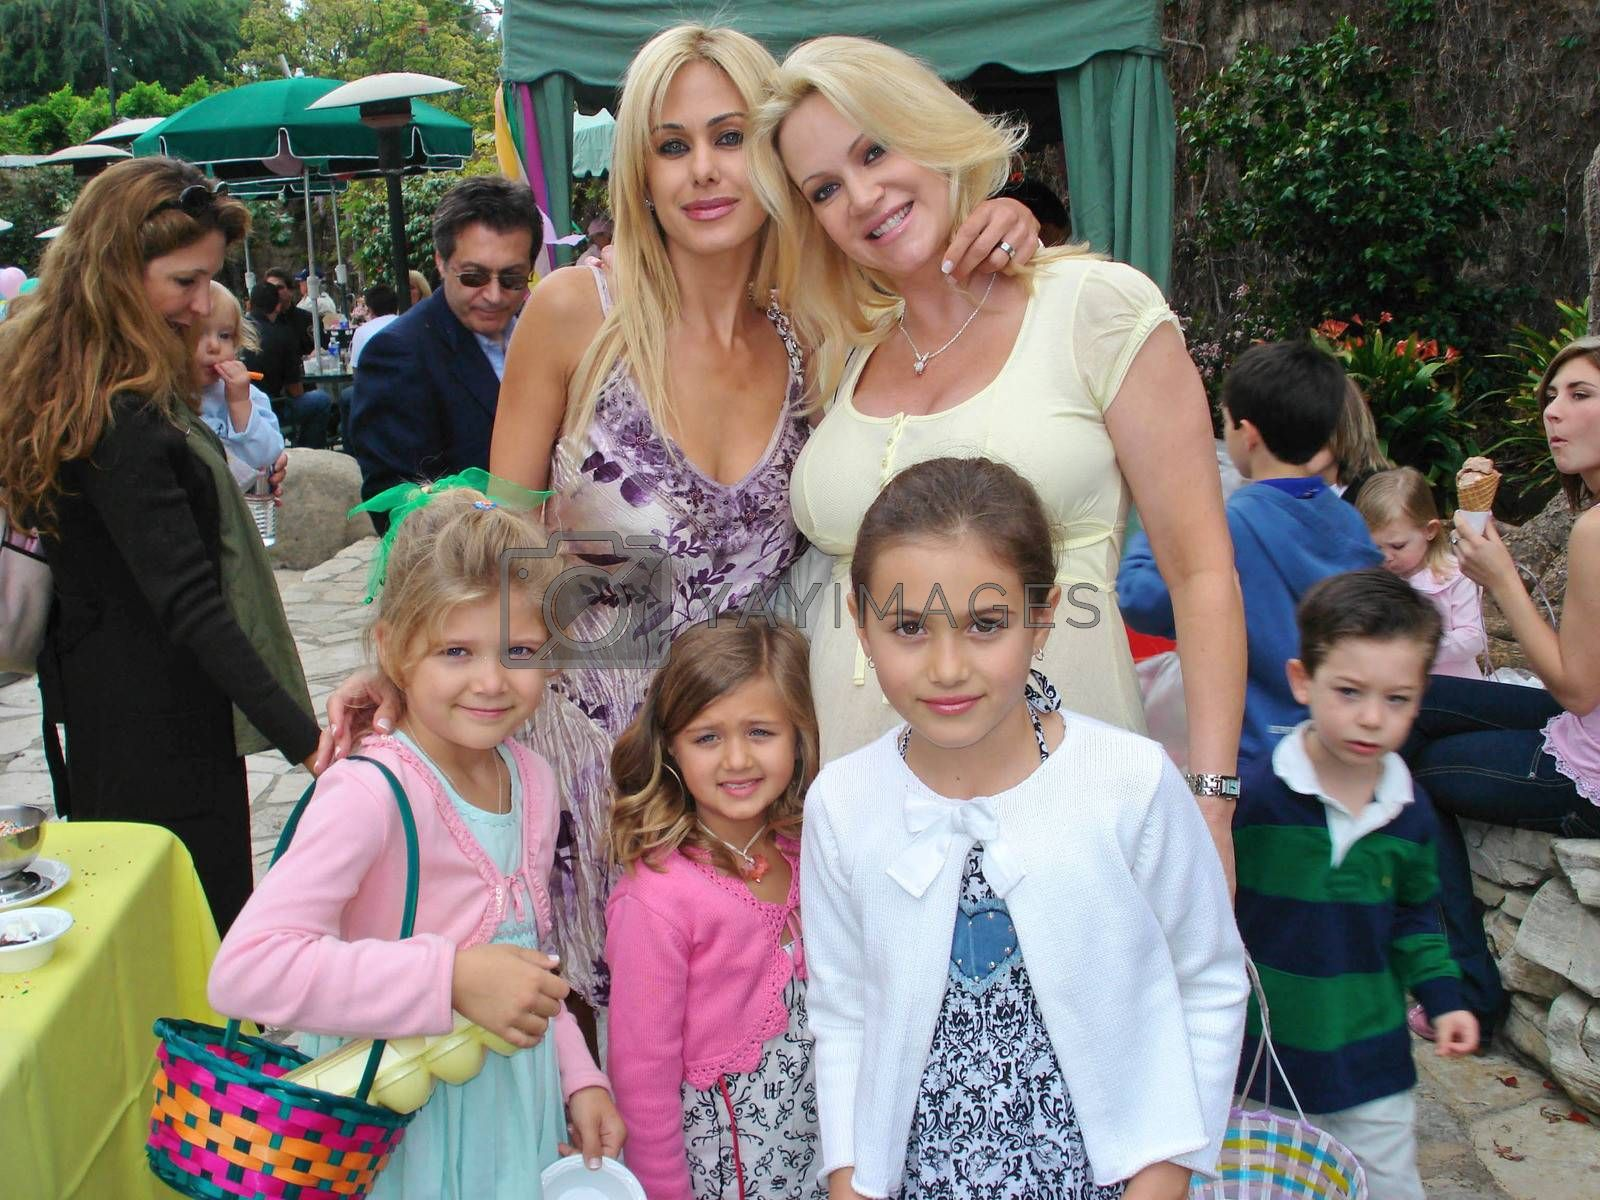 Shauna Sand and children with Barbara Moore at the Playboy Mansion Easter Egg Hunt. Playboy Mansion, Los Angeles, CA. 04-07-07